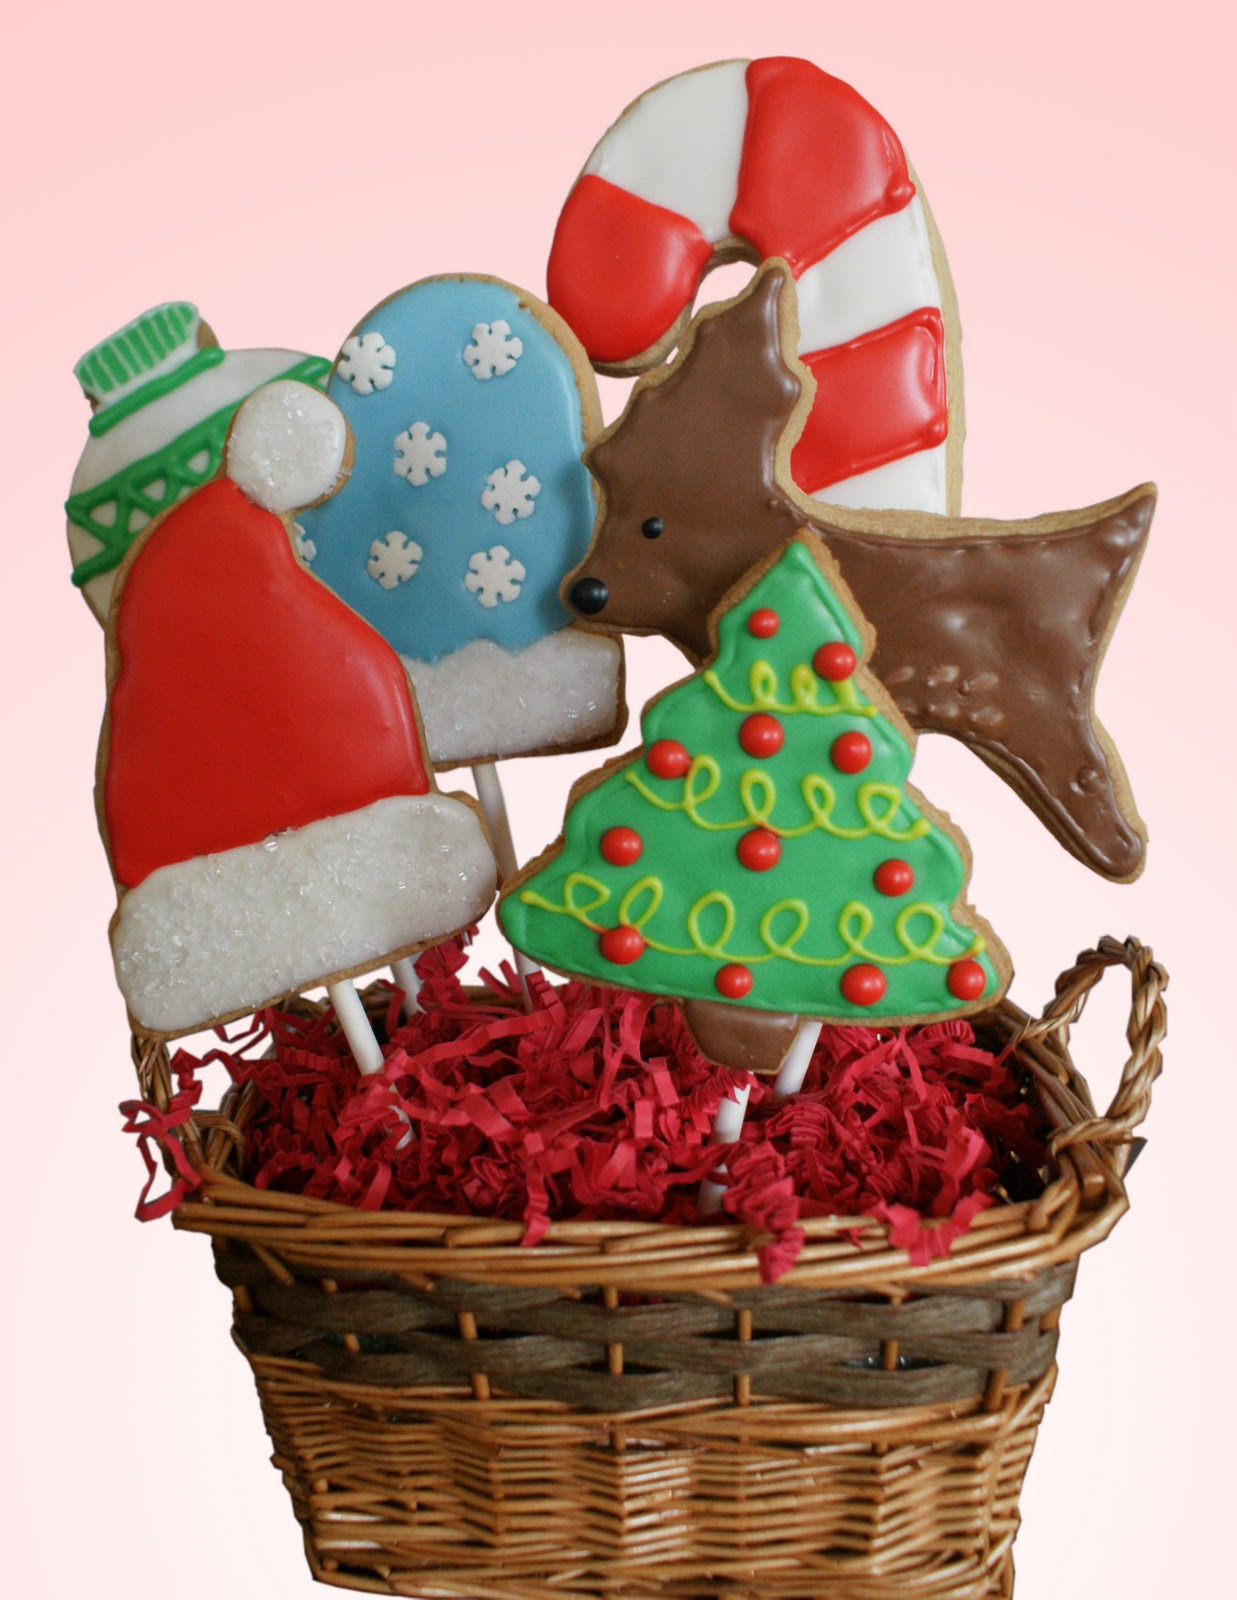 Spread holiday cheer to all your friends and family with one of Mrs. Fields' gourmet Holiday gift baskets and Christmas cookie saiholtiorgot.tk our collection of Holiday cookies and gift baskets and discover the perfect gift that will be sure to bring a smile to everyone's face.